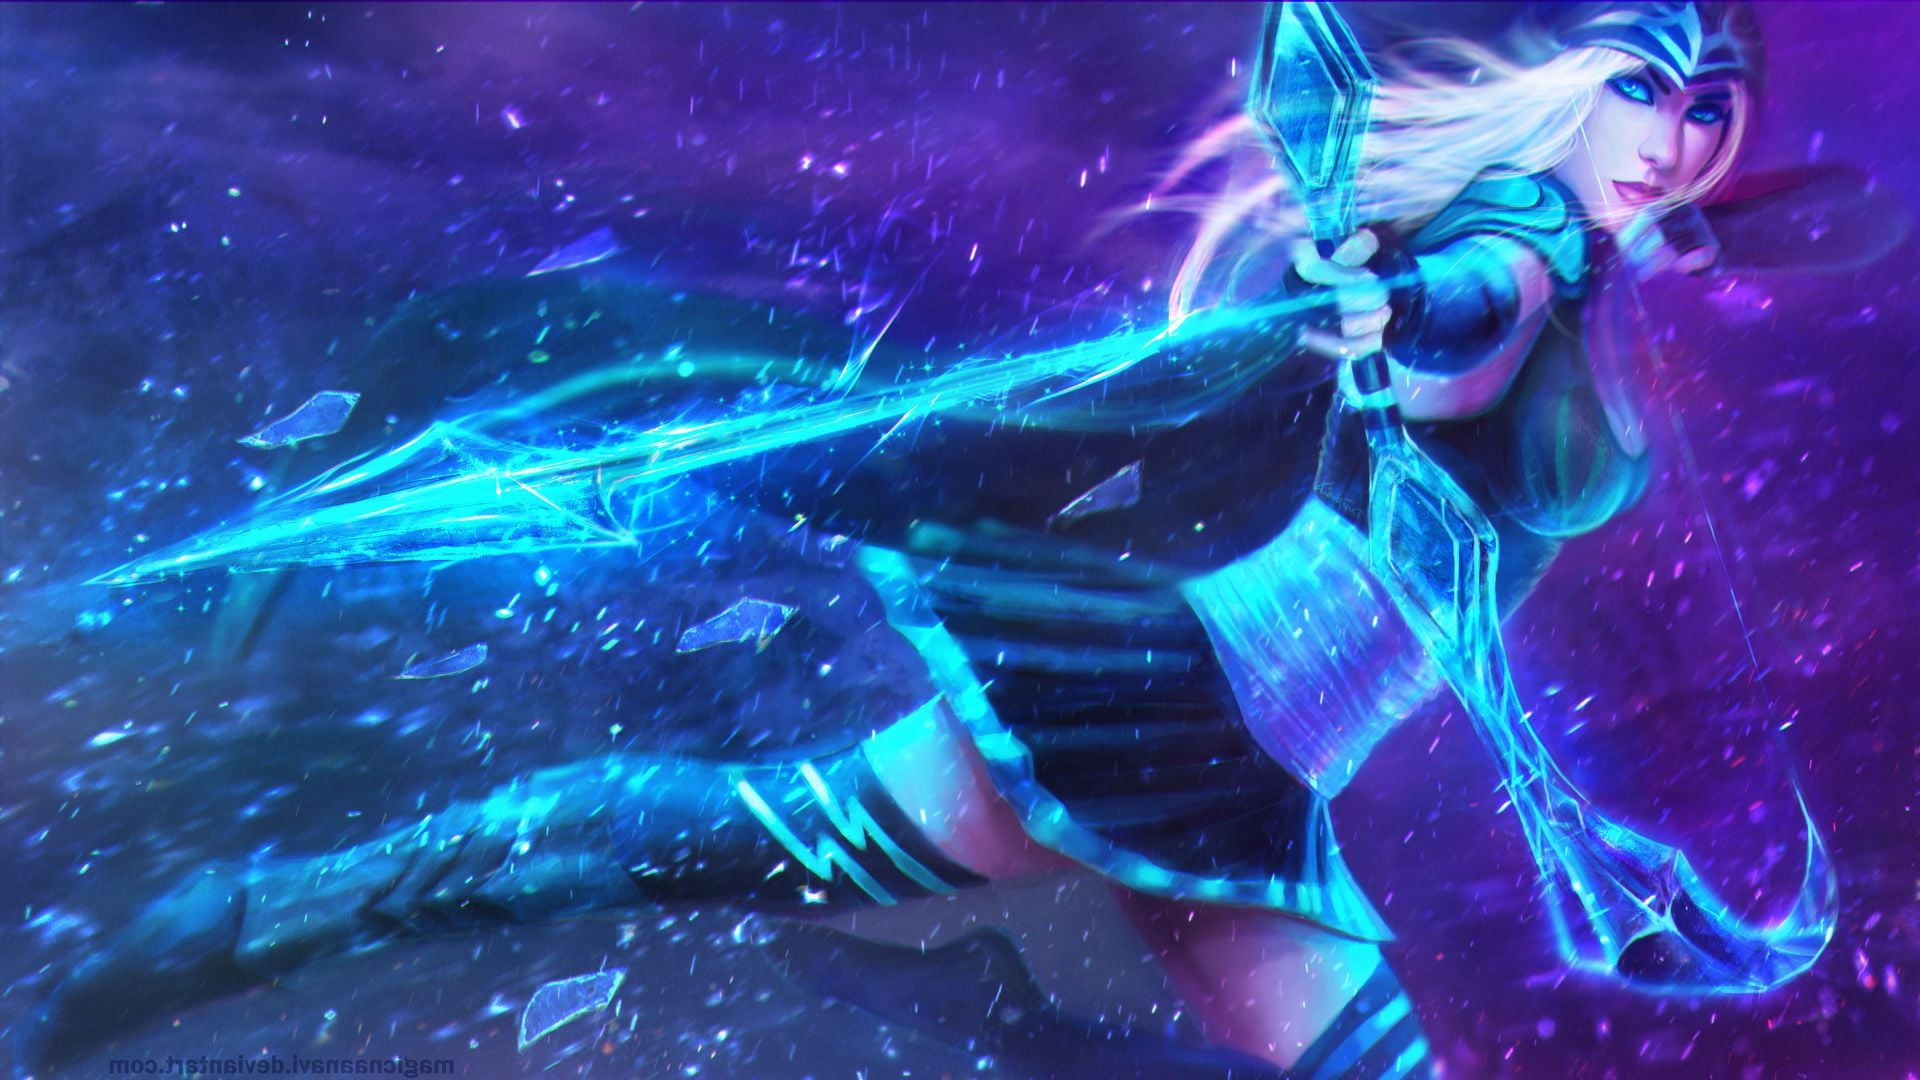 21 Ashe League Of Legends Wallpapers Hd Free Download